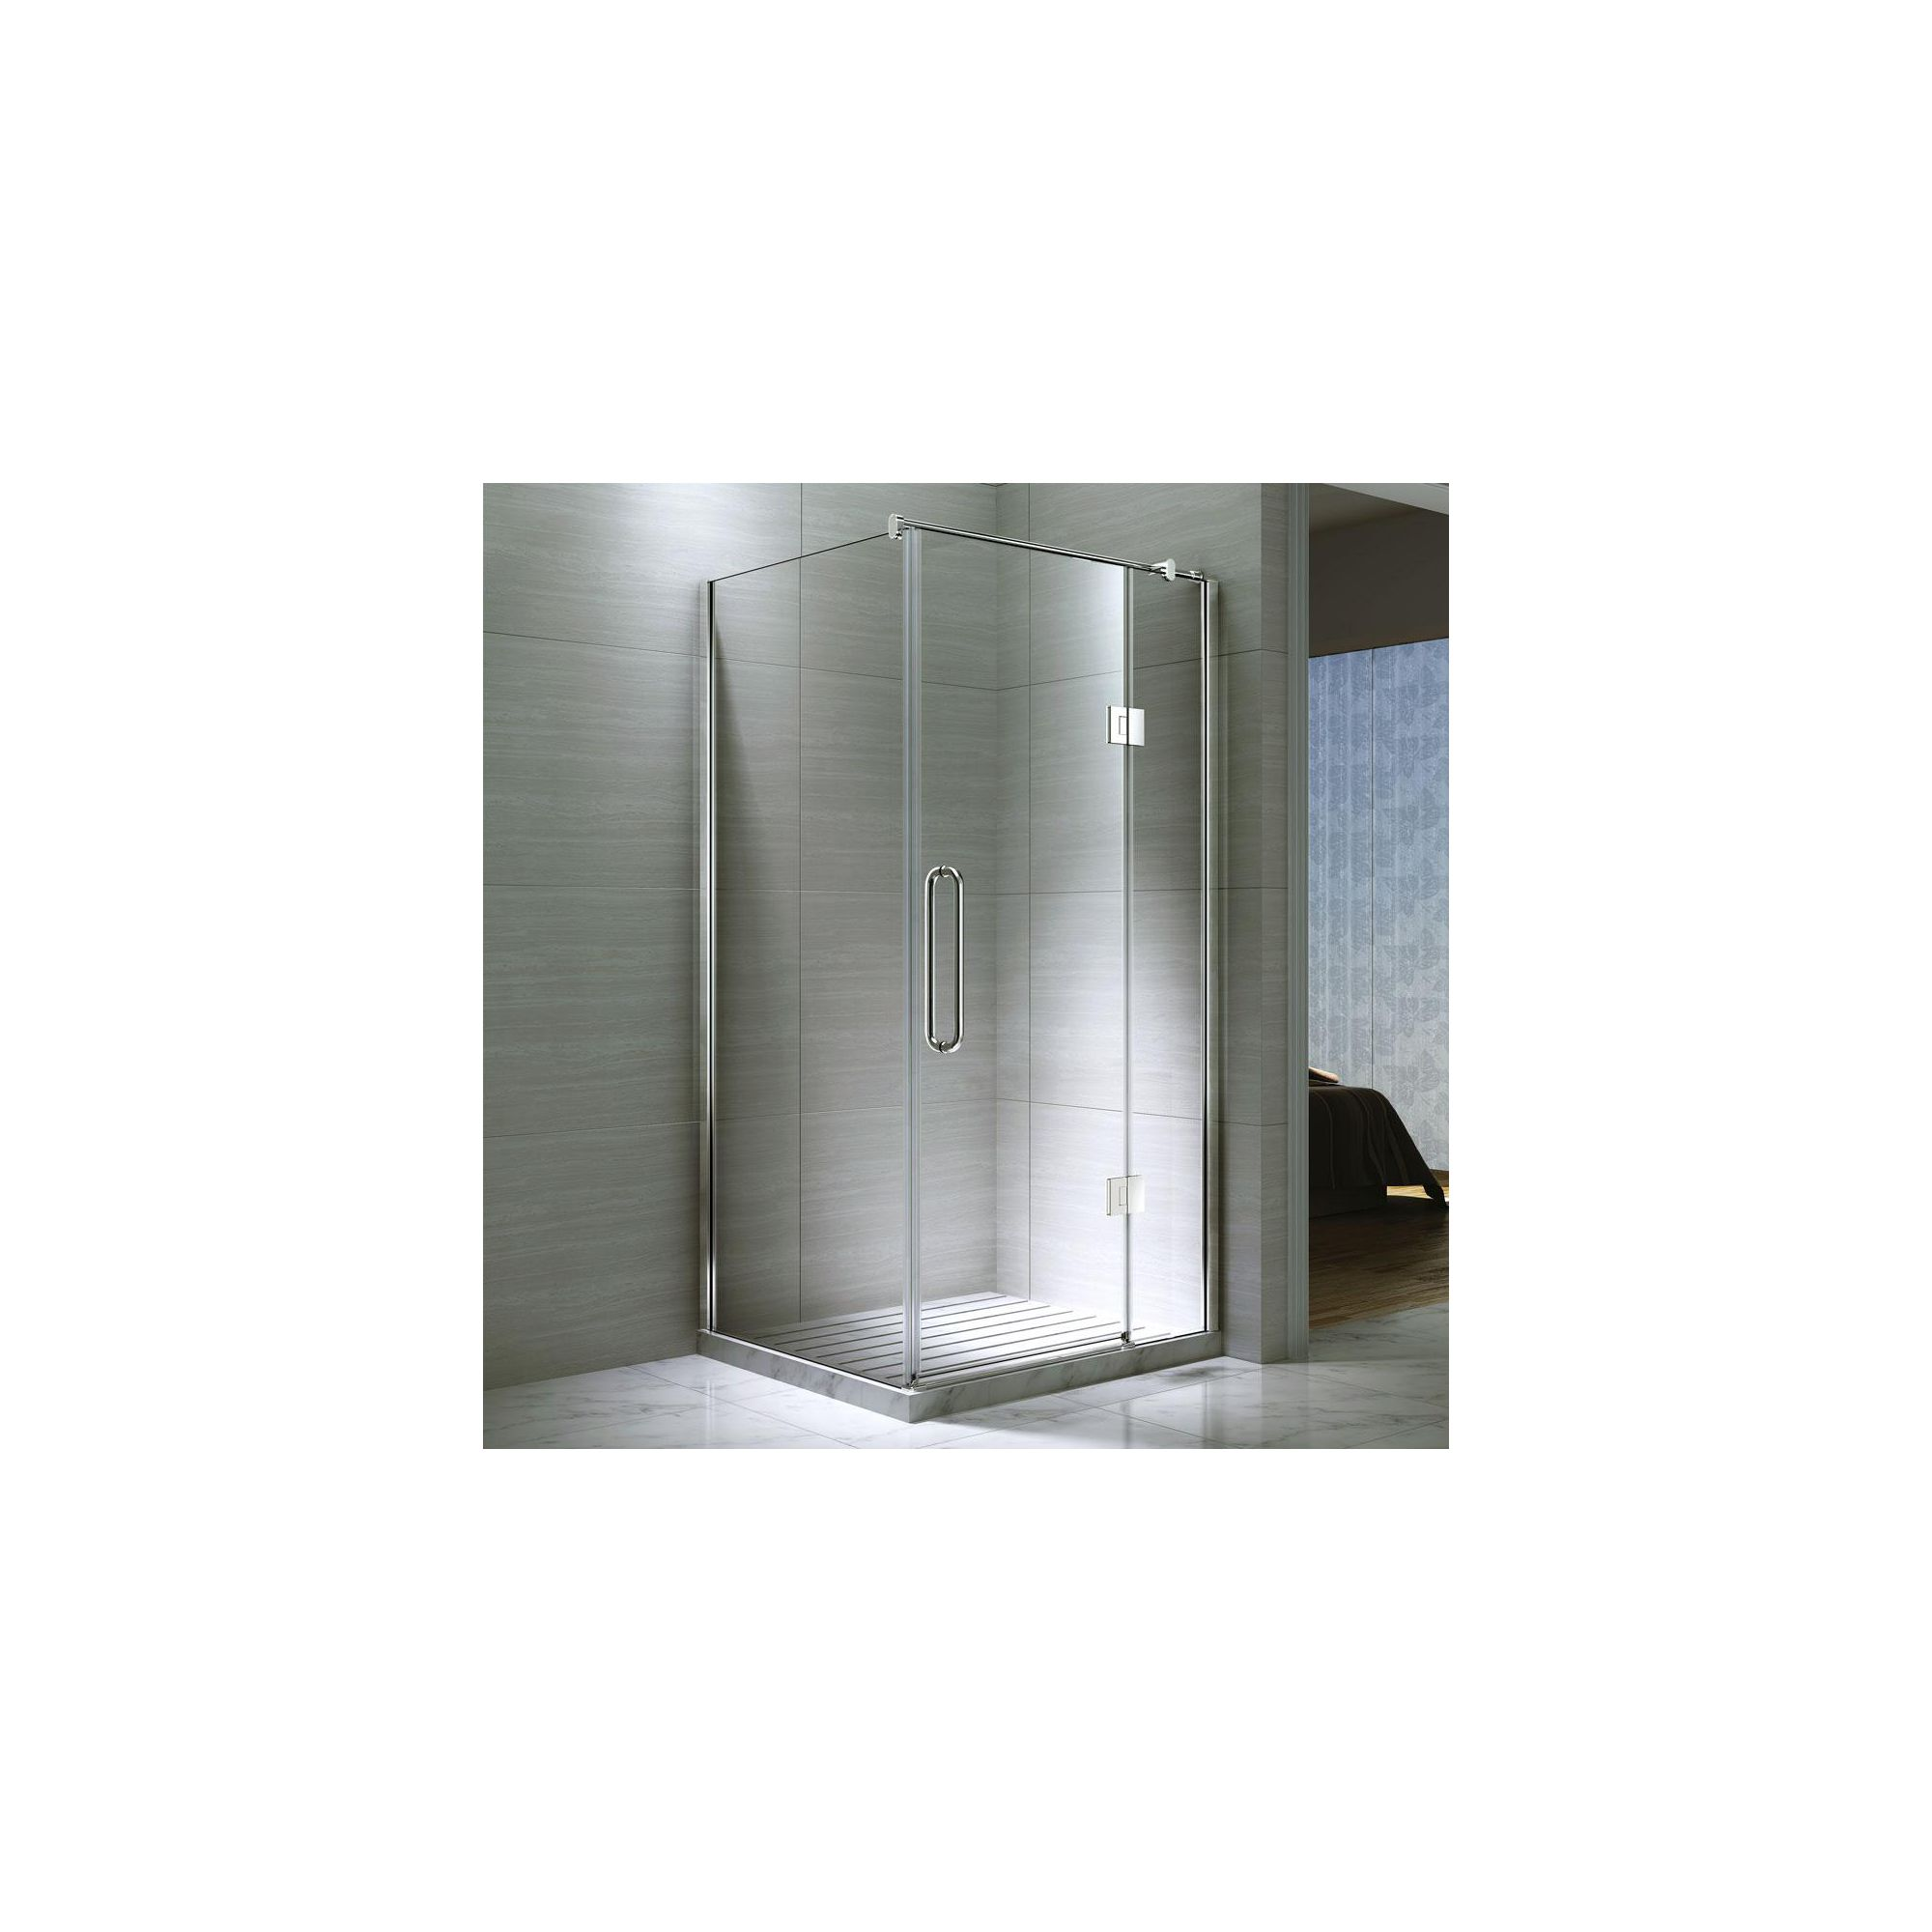 Desire Ten Hinged Shower Door with Side Panel, 900mm x 900mm, Semi-Frameless, 10mm Glass at Tesco Direct